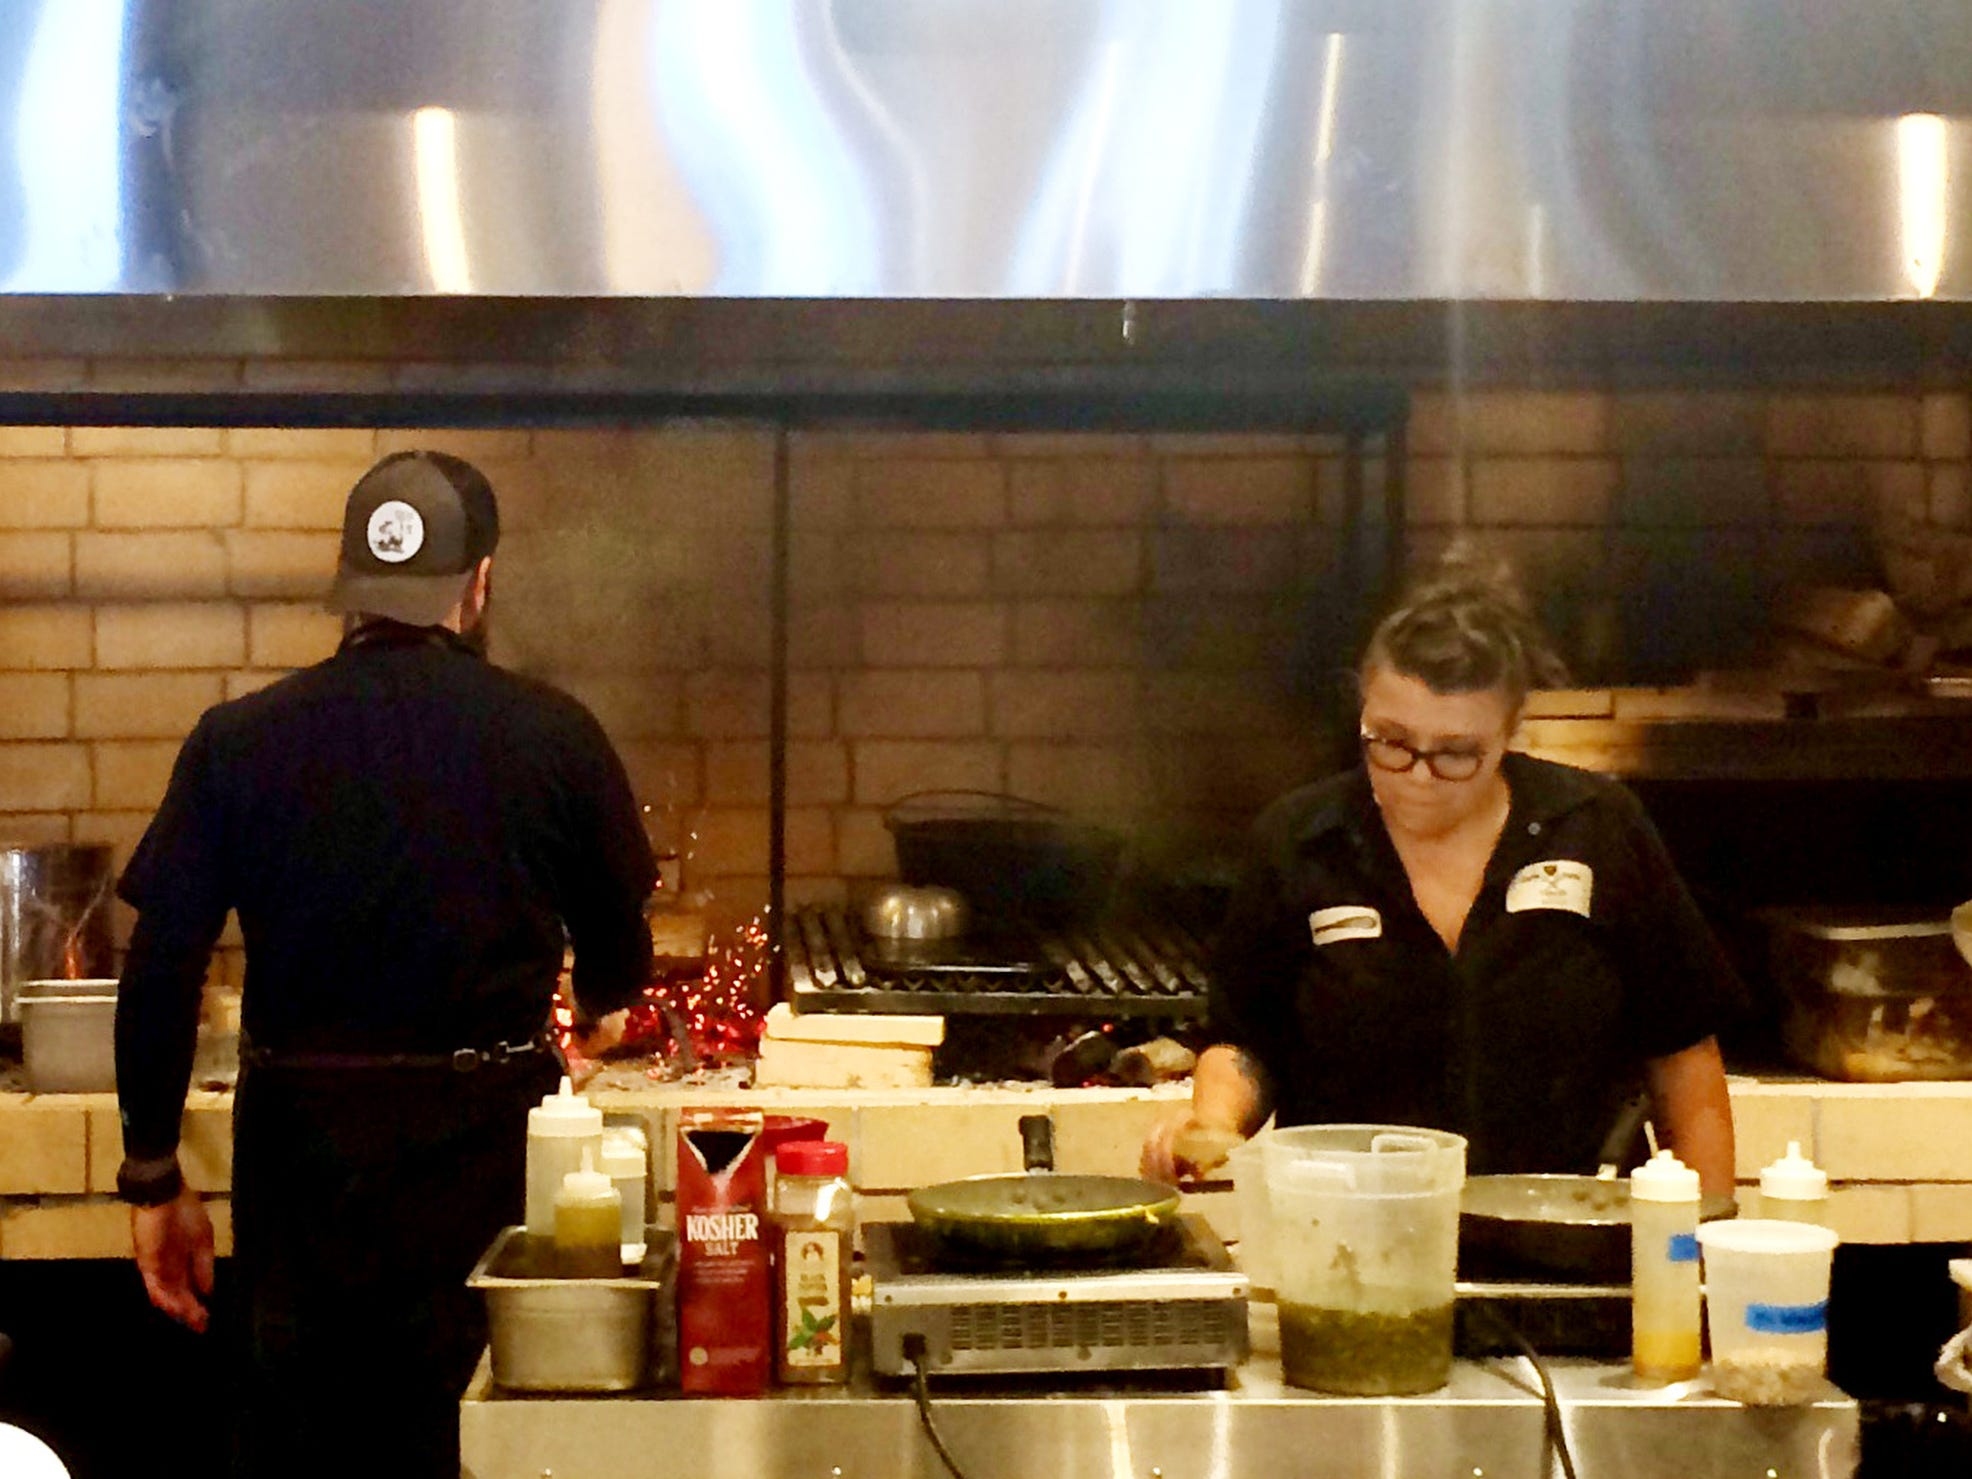 Chefs Nick and Audra Guidry, cooking in the open kitchen of Pelican+Pig.